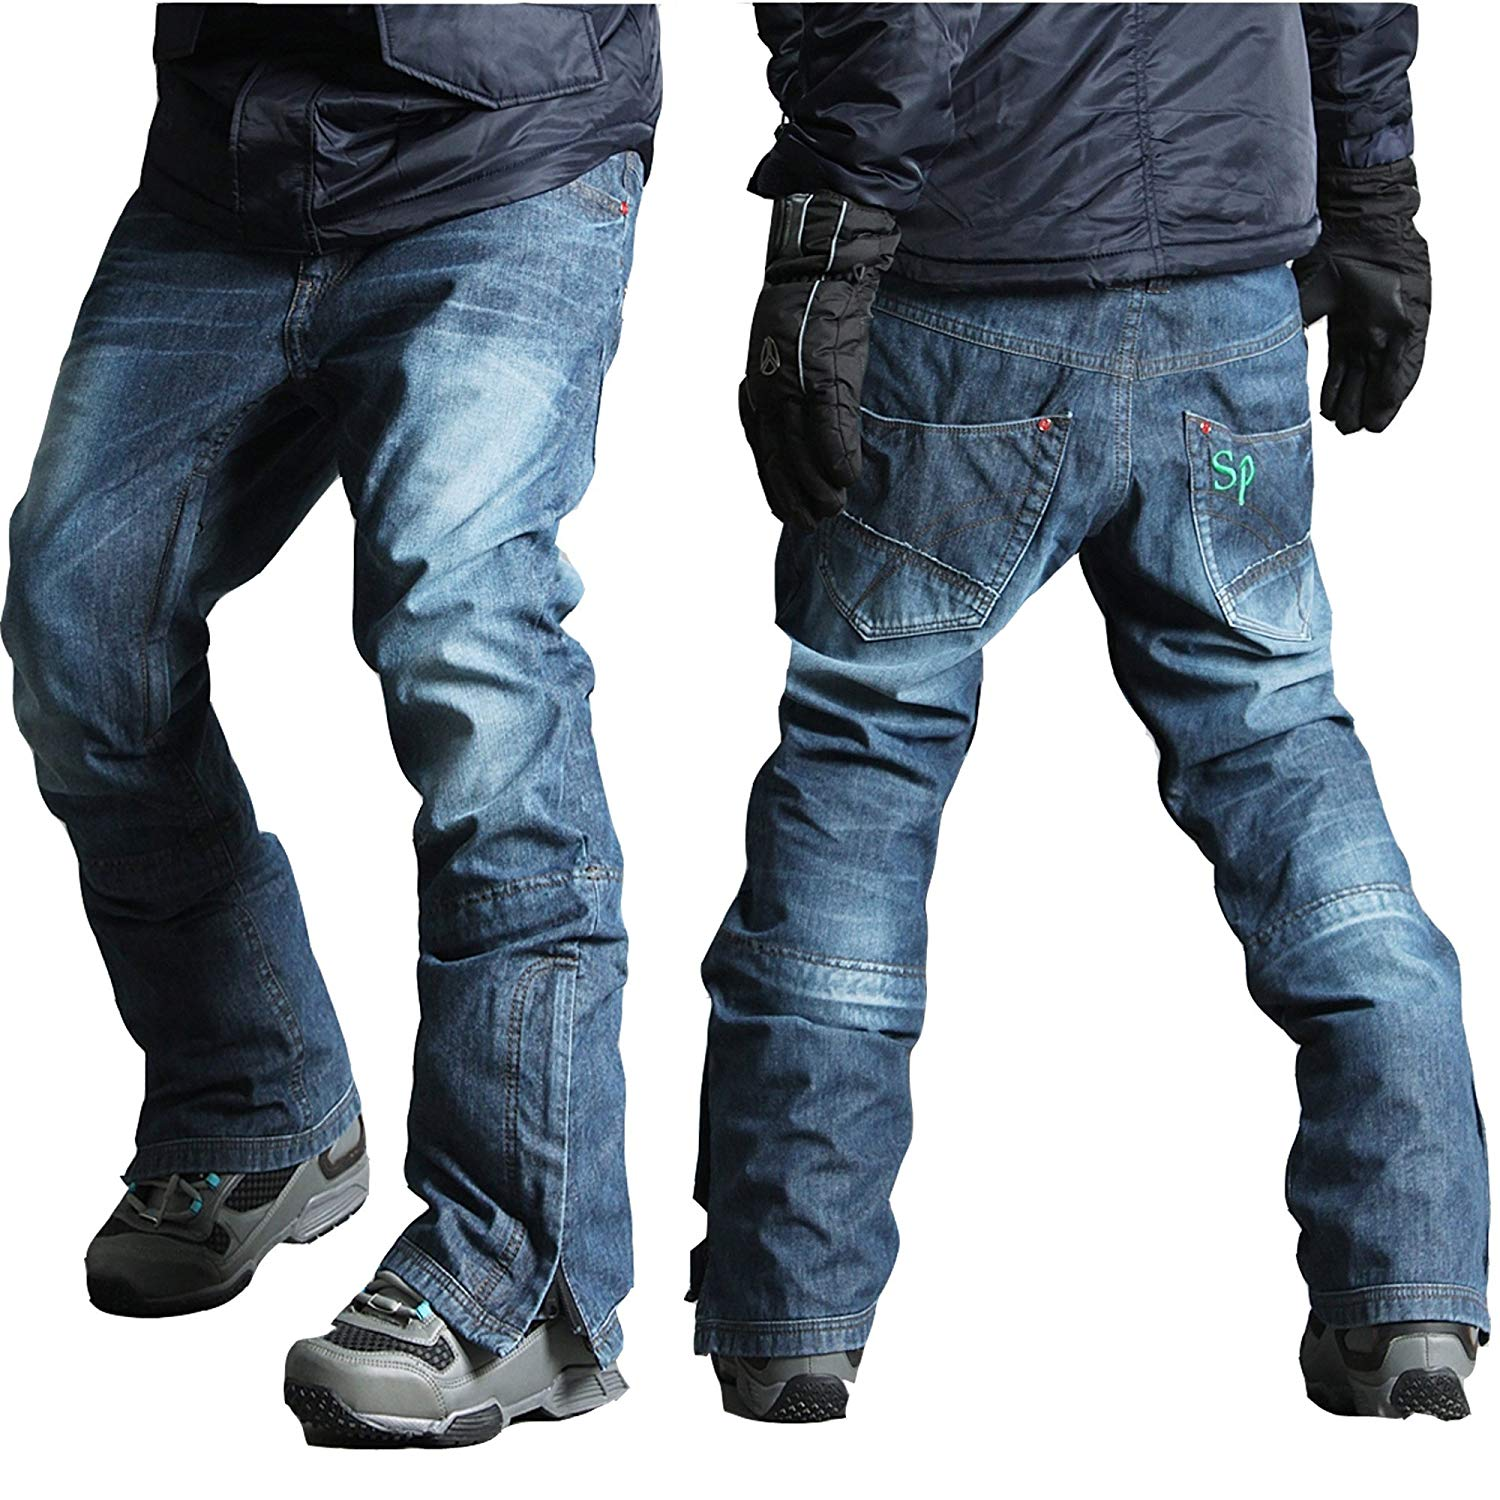 d173cc6dd8 Get Quotations · myglory77mall Mens Winter Warm Waterproof hip Ski  Snowboard Denim Pants JEANS